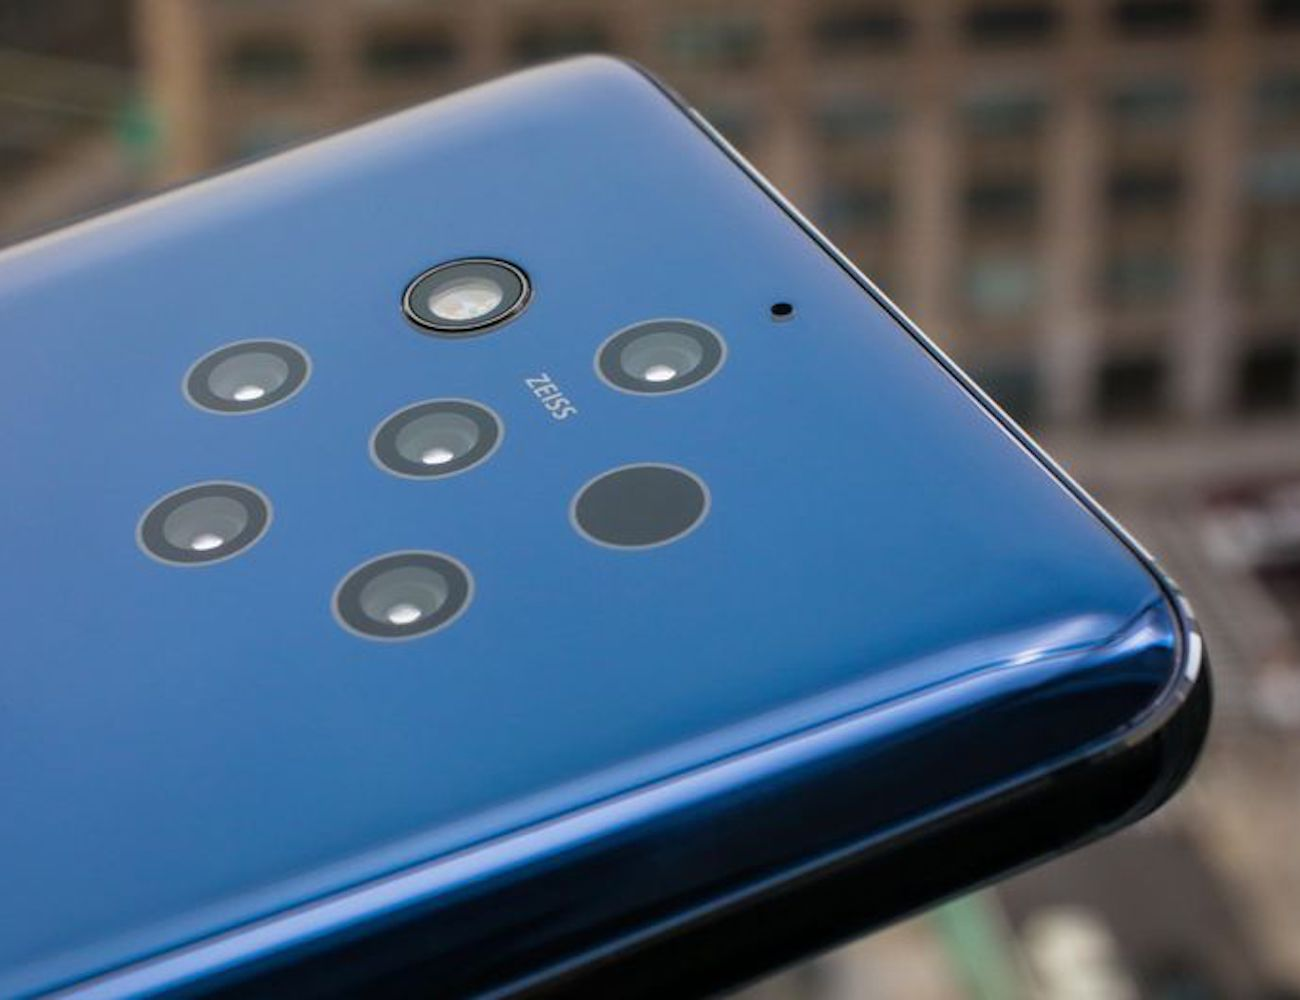 Nokia 9 PureView Five Camera Smartphone takes incredible photos